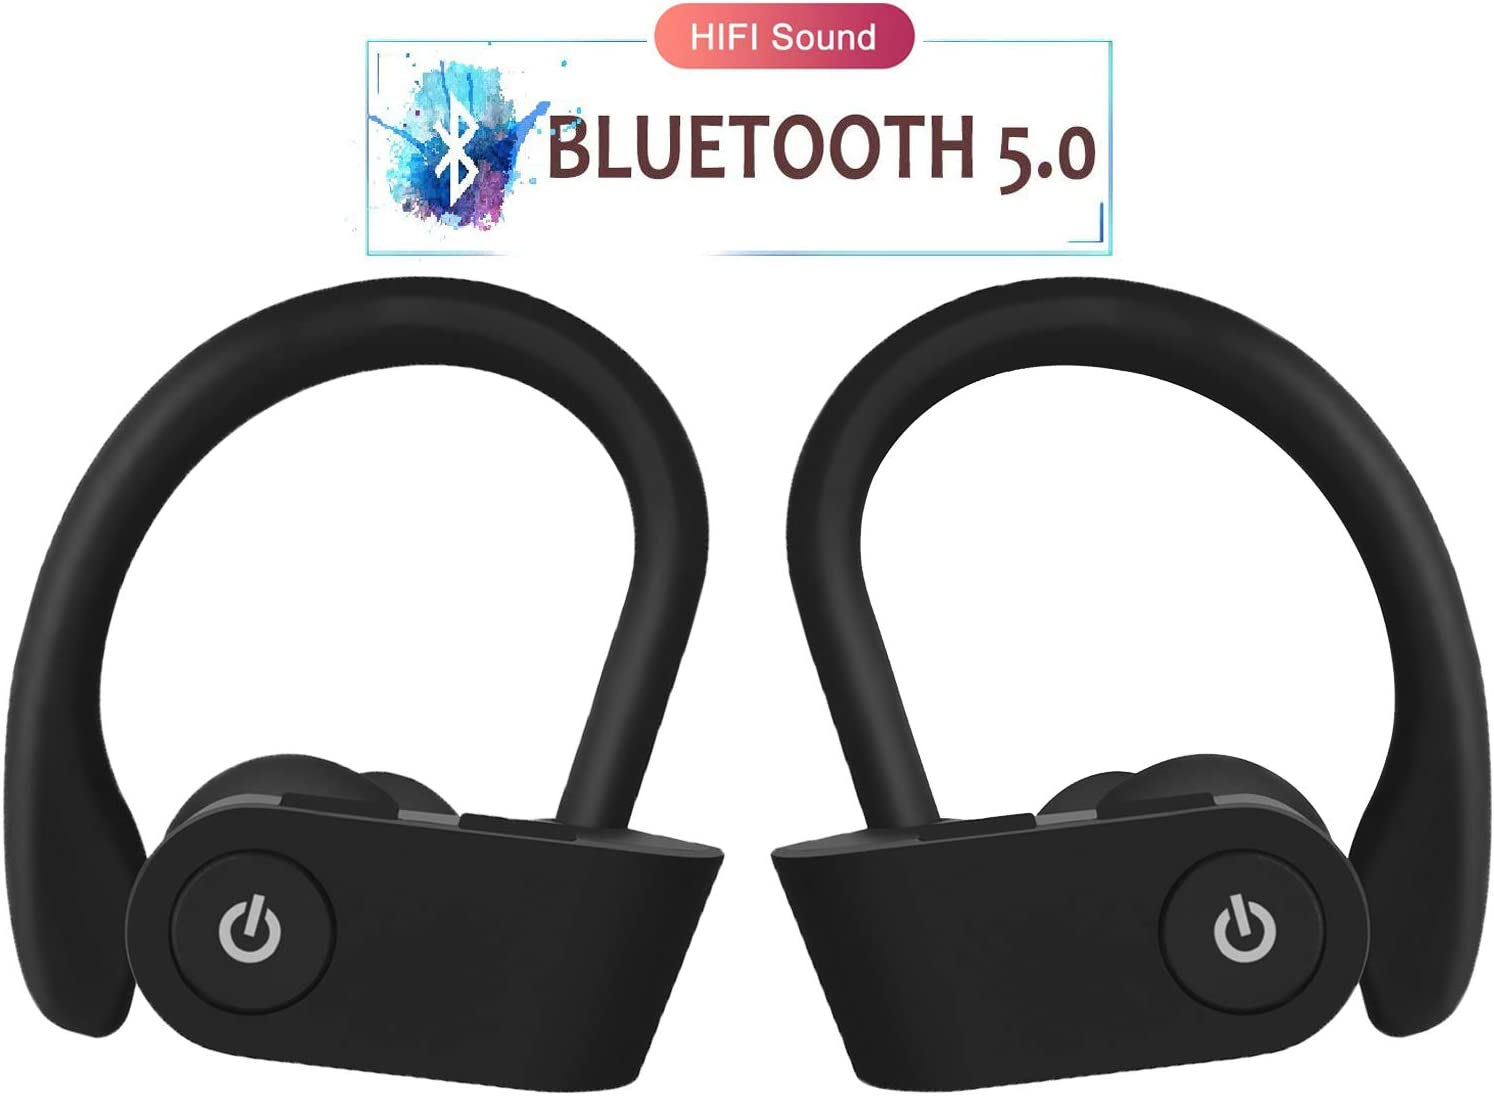 Wireless Earbuds, 5.0 Bluetooth Sports Headphones, Stereo Noise Reduction and Sweat-Proof Headphones in-Ear Built-in Microphone Headphones, Compatible with Apple Airpods Android iPhone, for Sports